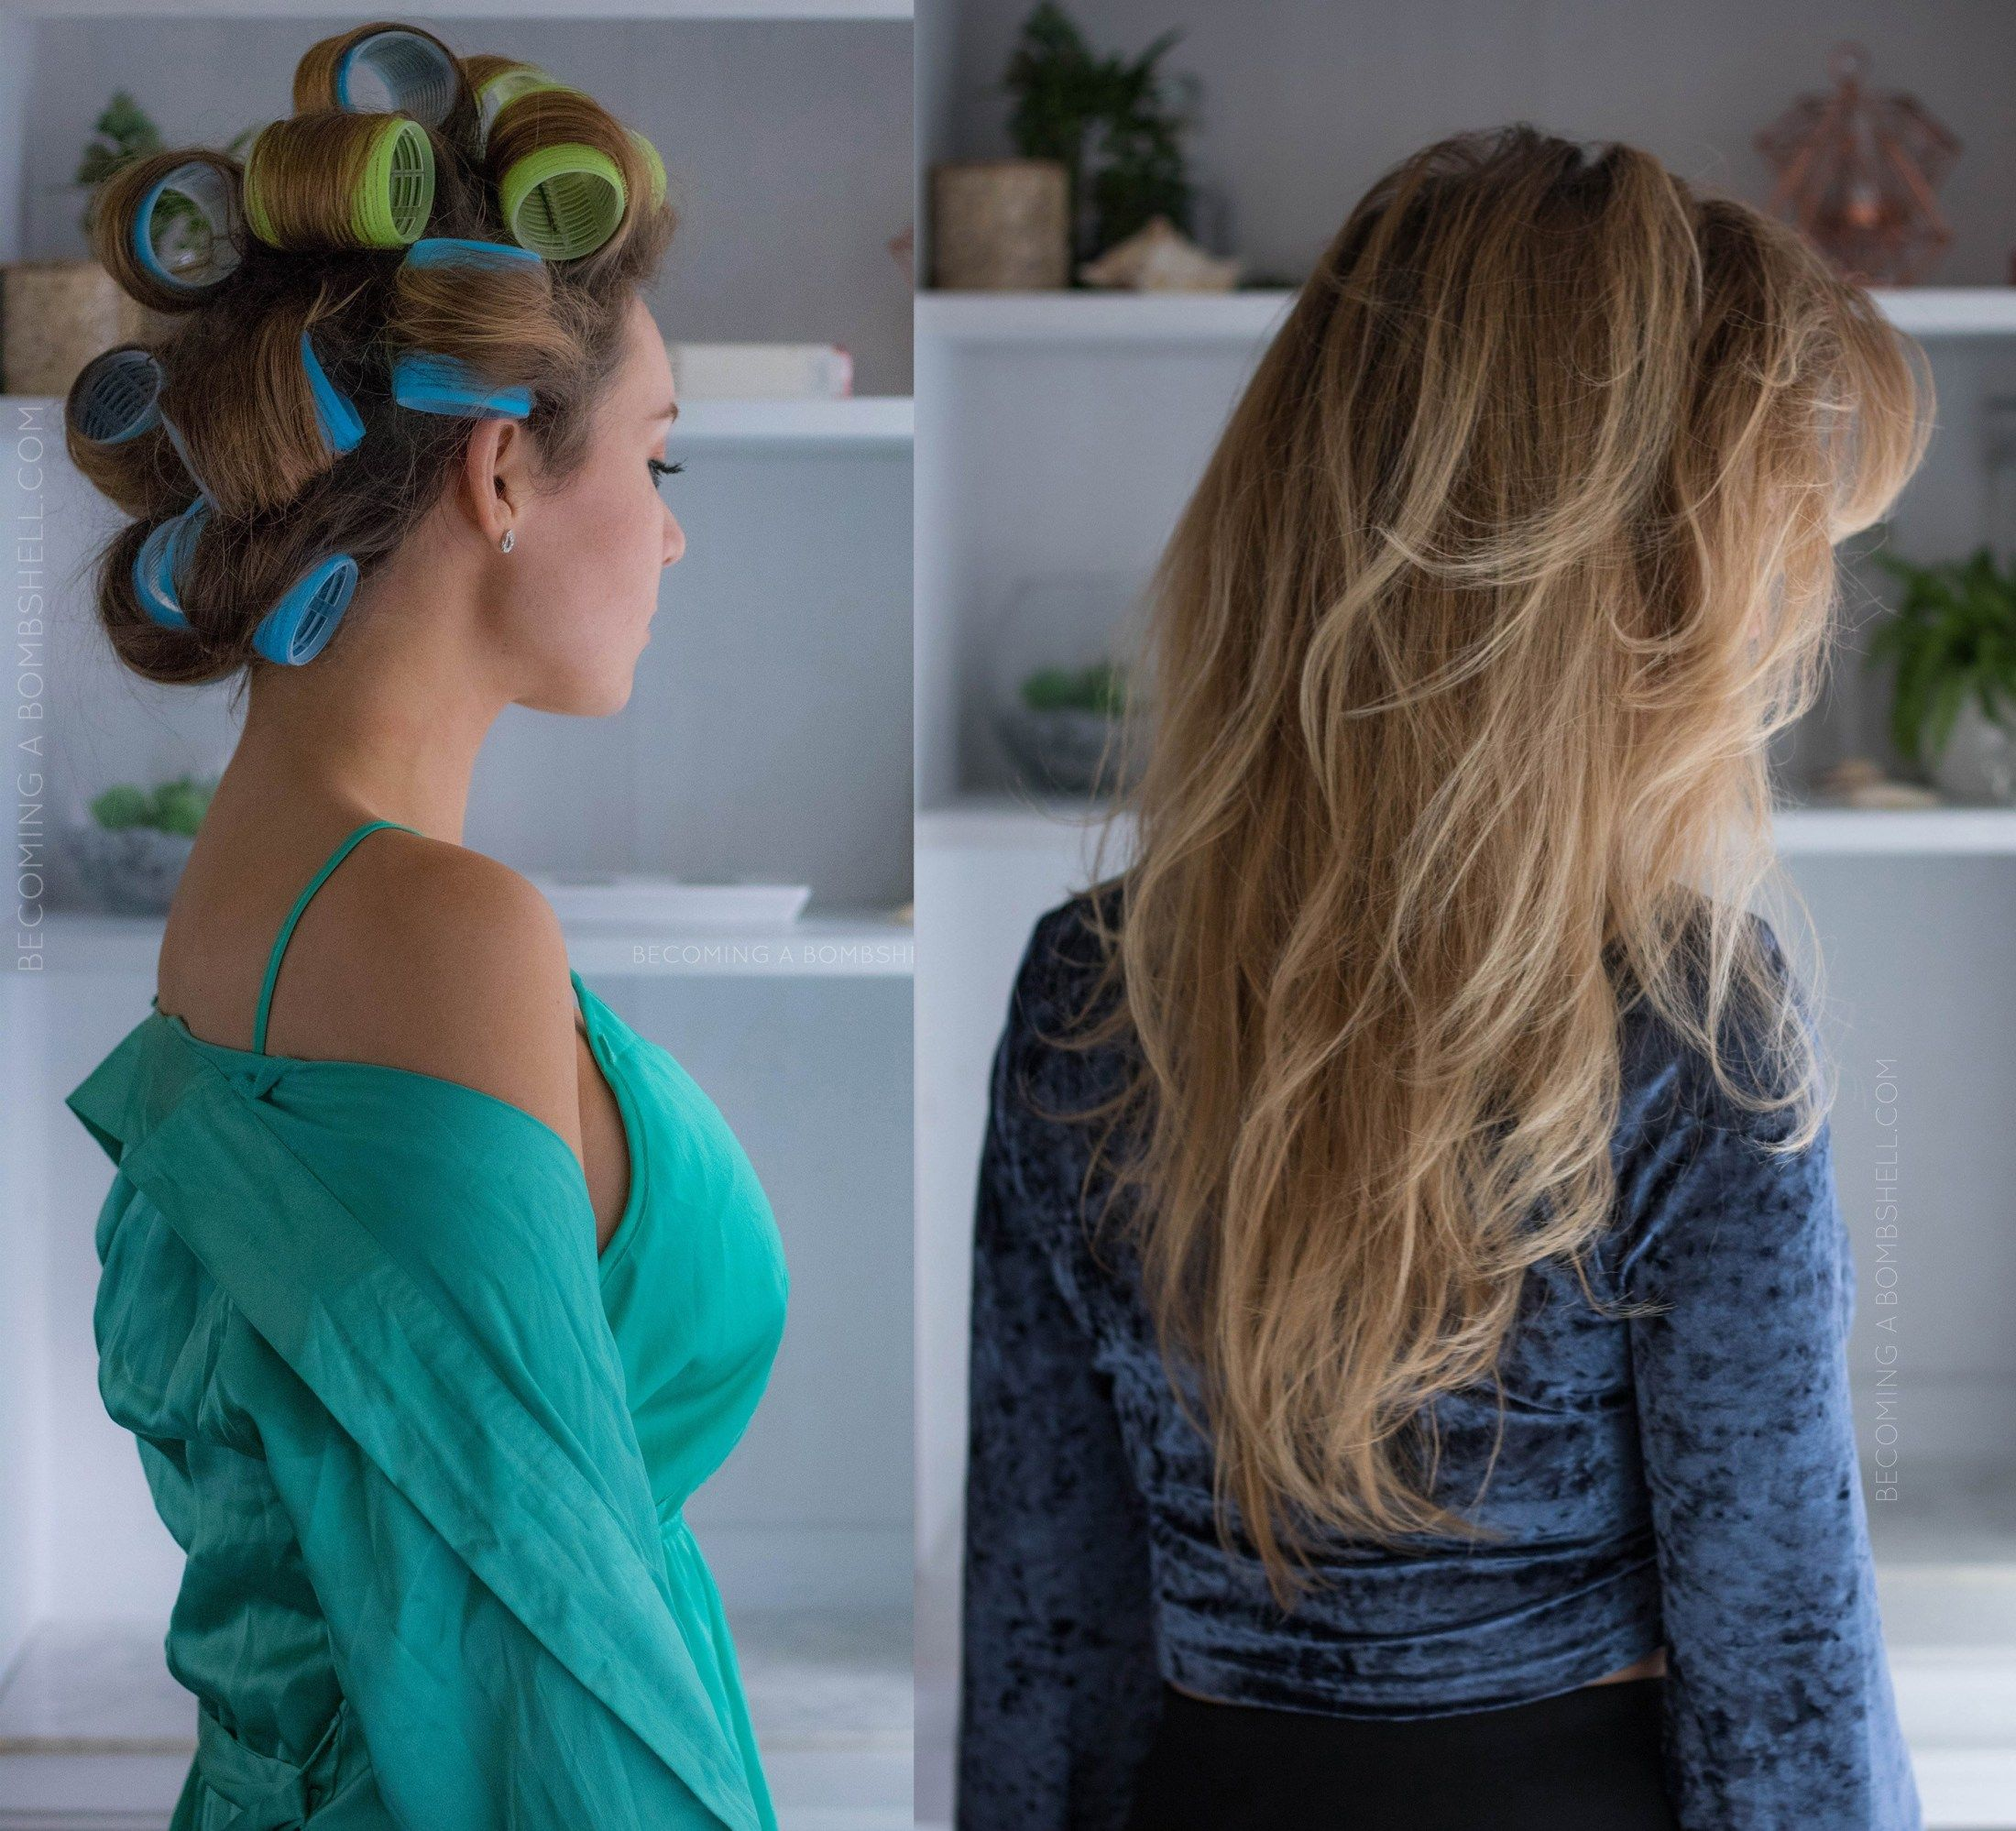 How To Use Velcro Rollers For Voluminous Hair Becoming A Bombshell Velcro Rollers Big Hair Rollers Hairstyles For Thin Hair